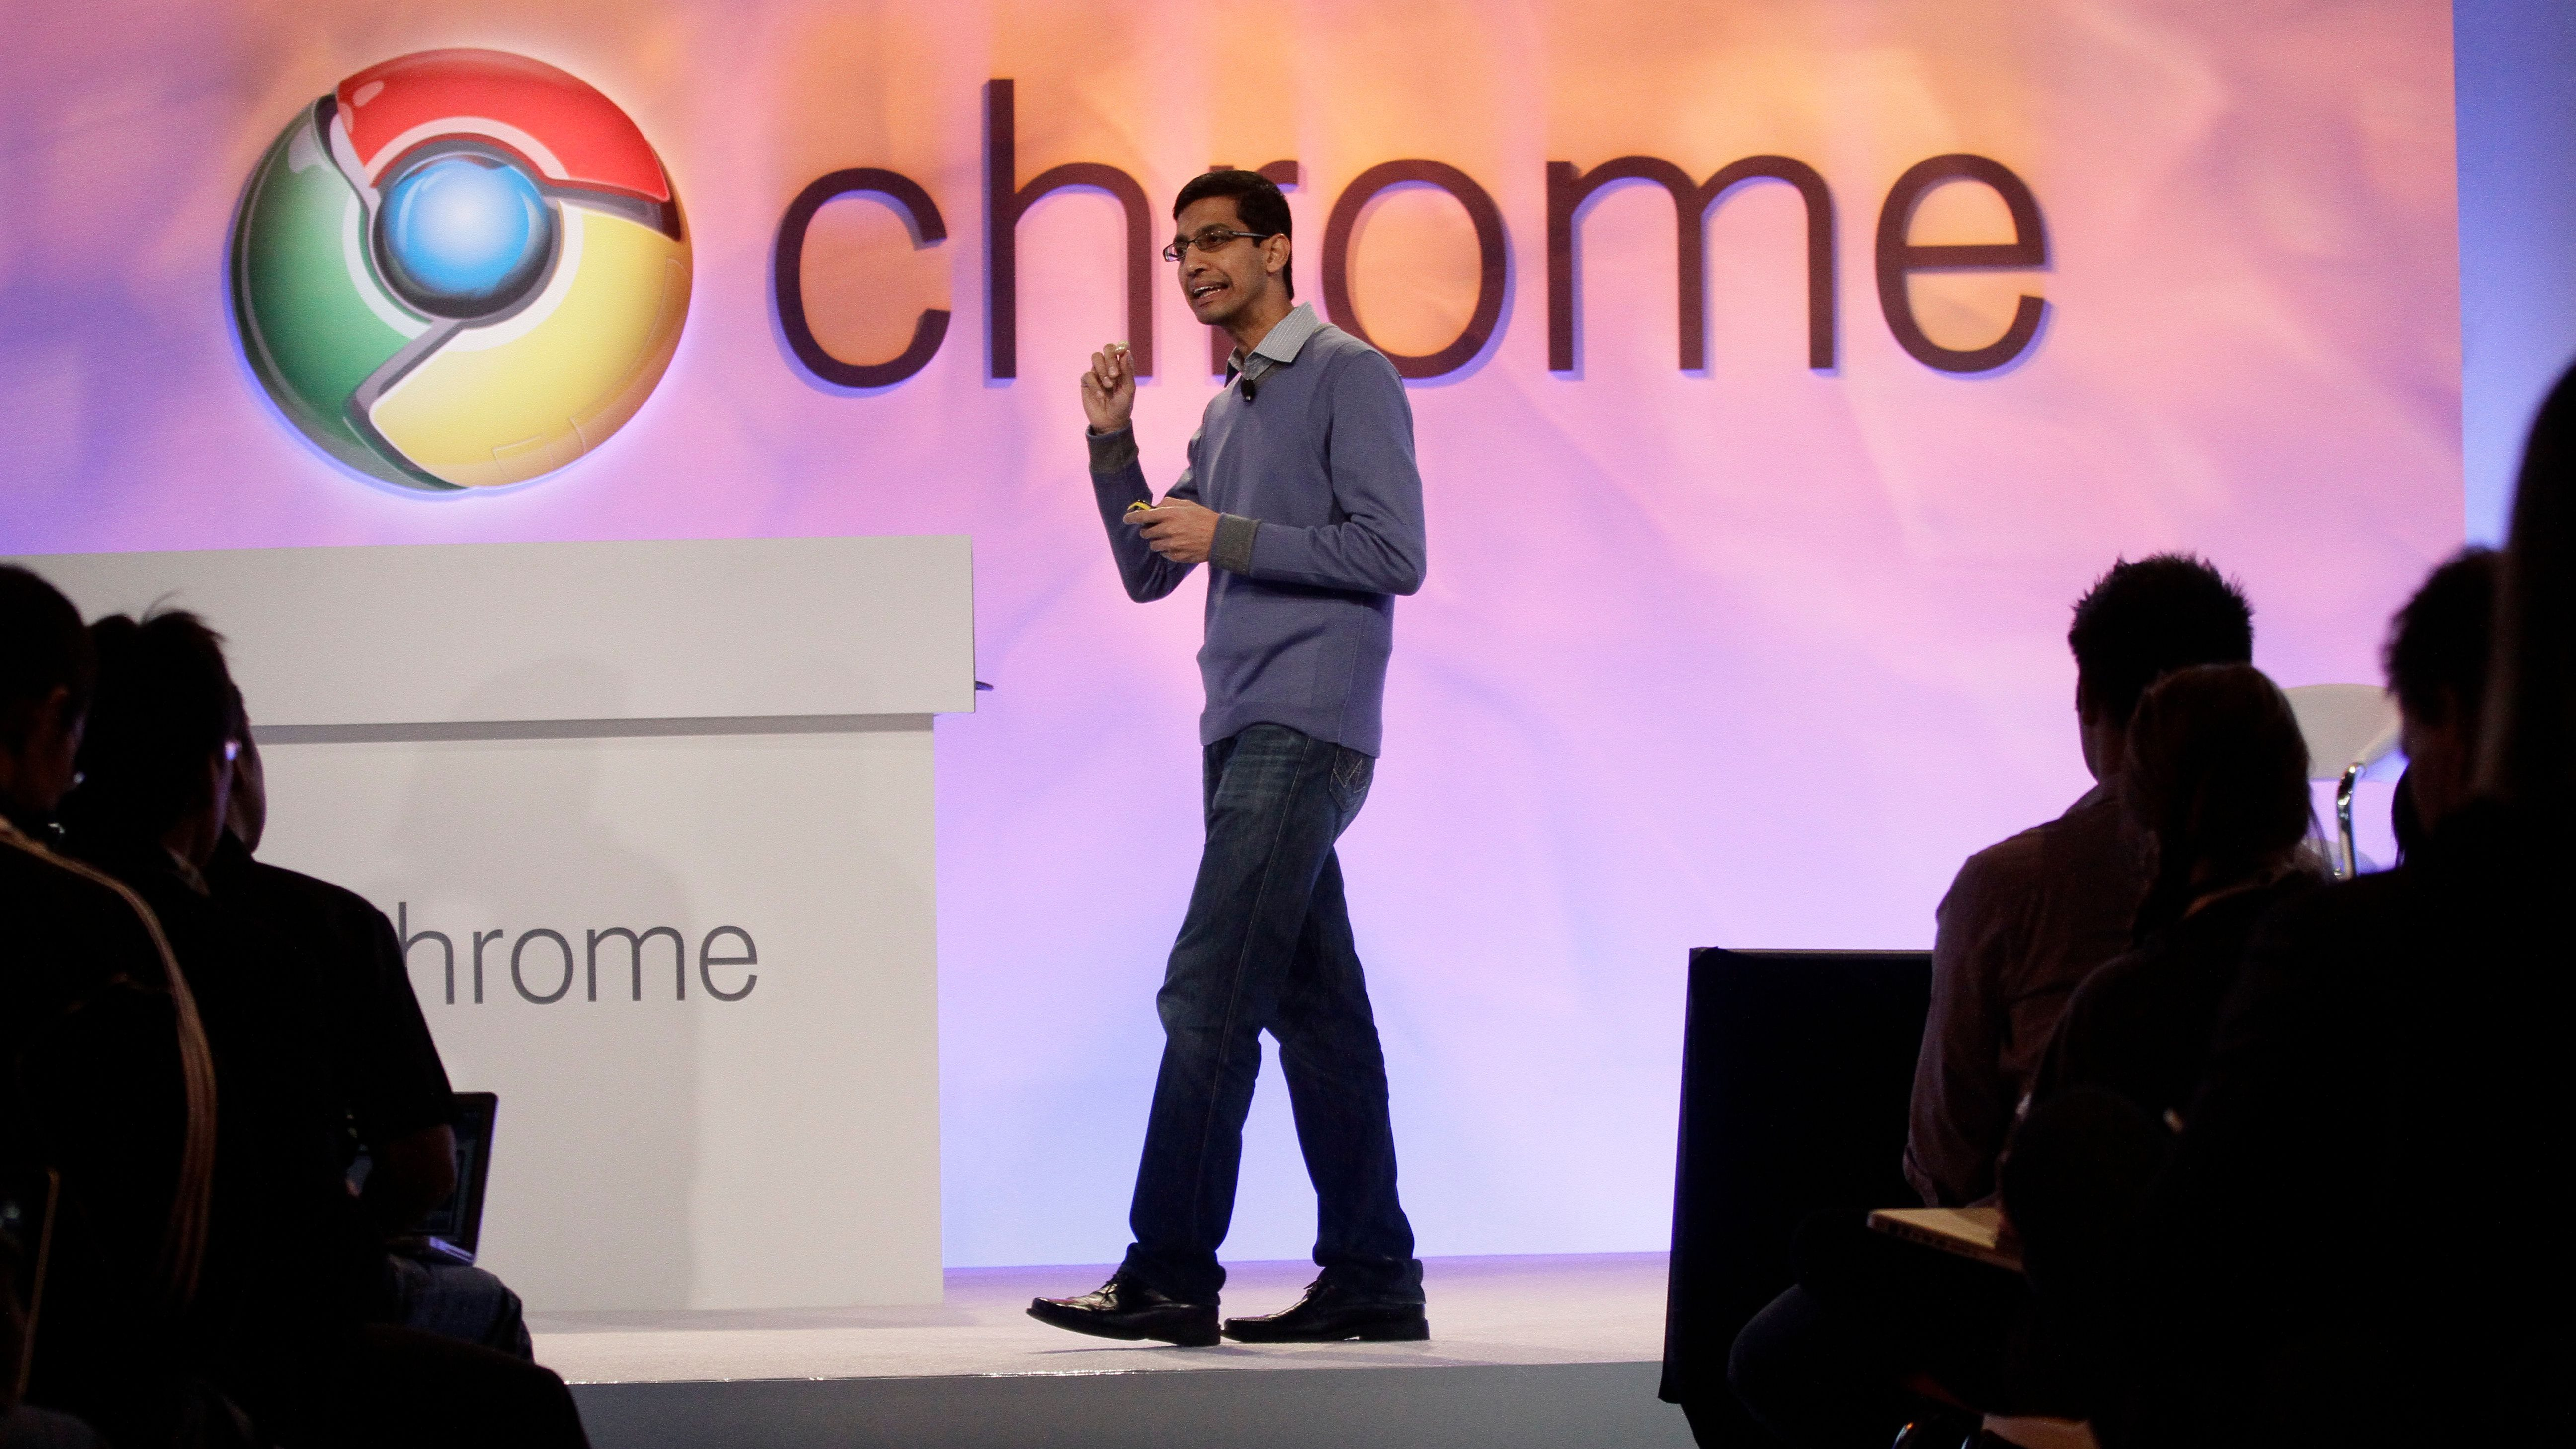 Sundar Pichai, Vice President for Product Management, demonstrates the new Google Chrome operating system in San Francisco, Tuesday, Dec. 7, 2010.